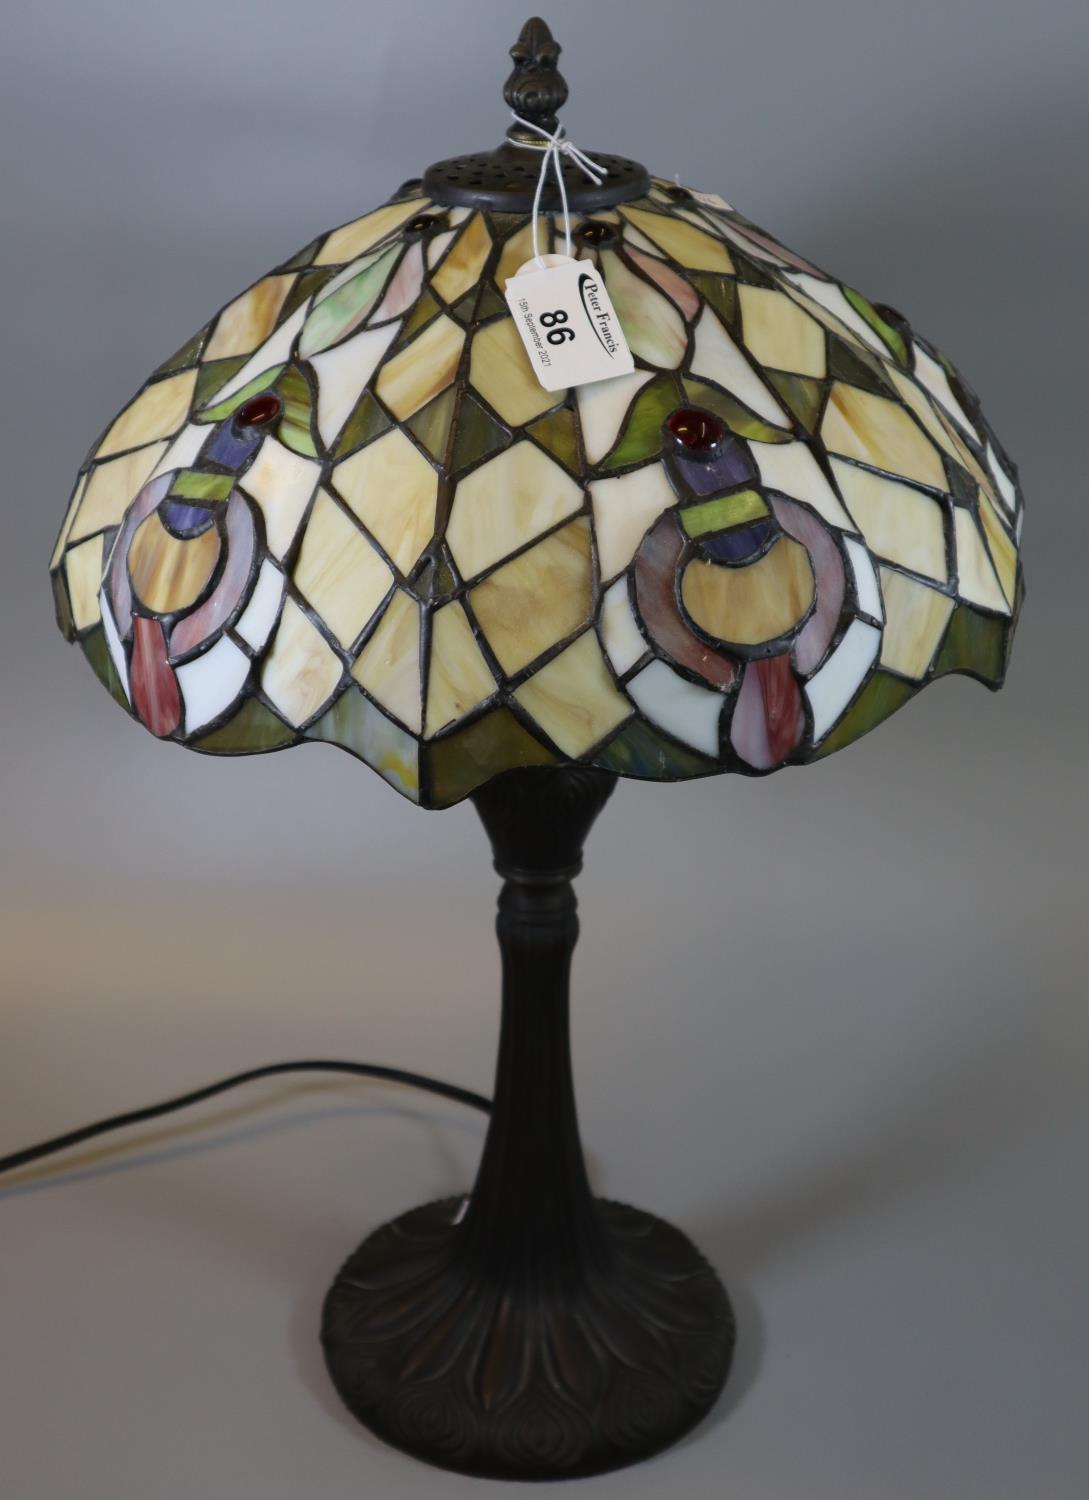 Modern Tiffany style lead glazed table lamp and shade. 48cm high approx. (B.P. 21% + VAT)